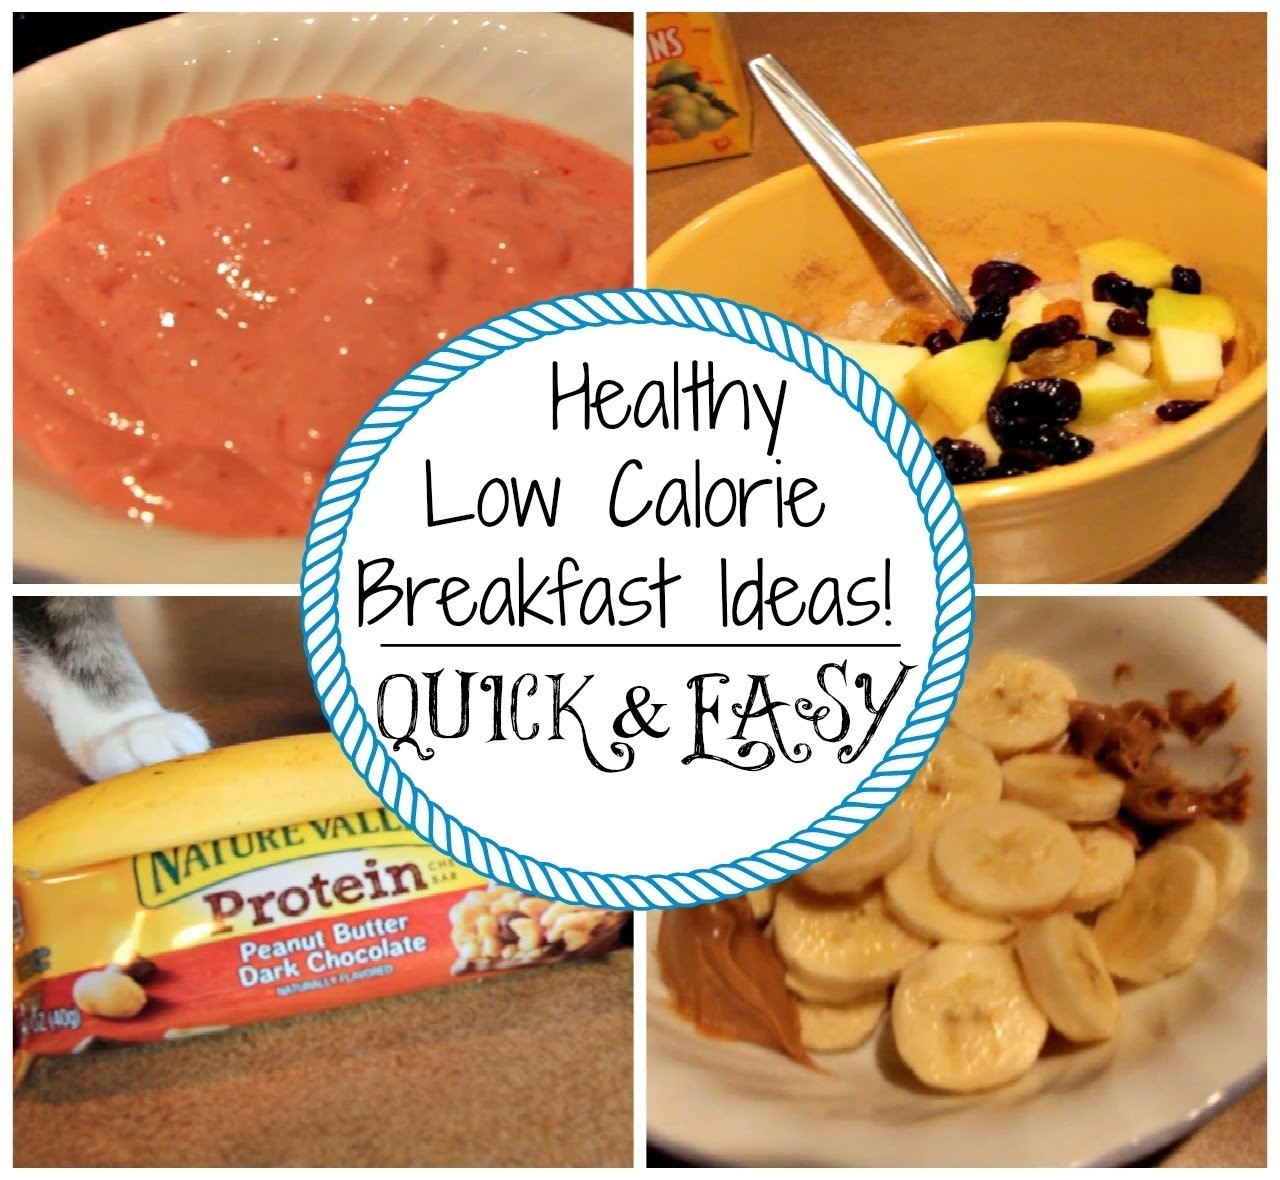 Healthy Low Calorie Breakfast  Low Calorie Breakfast IdeasWritings and Papers